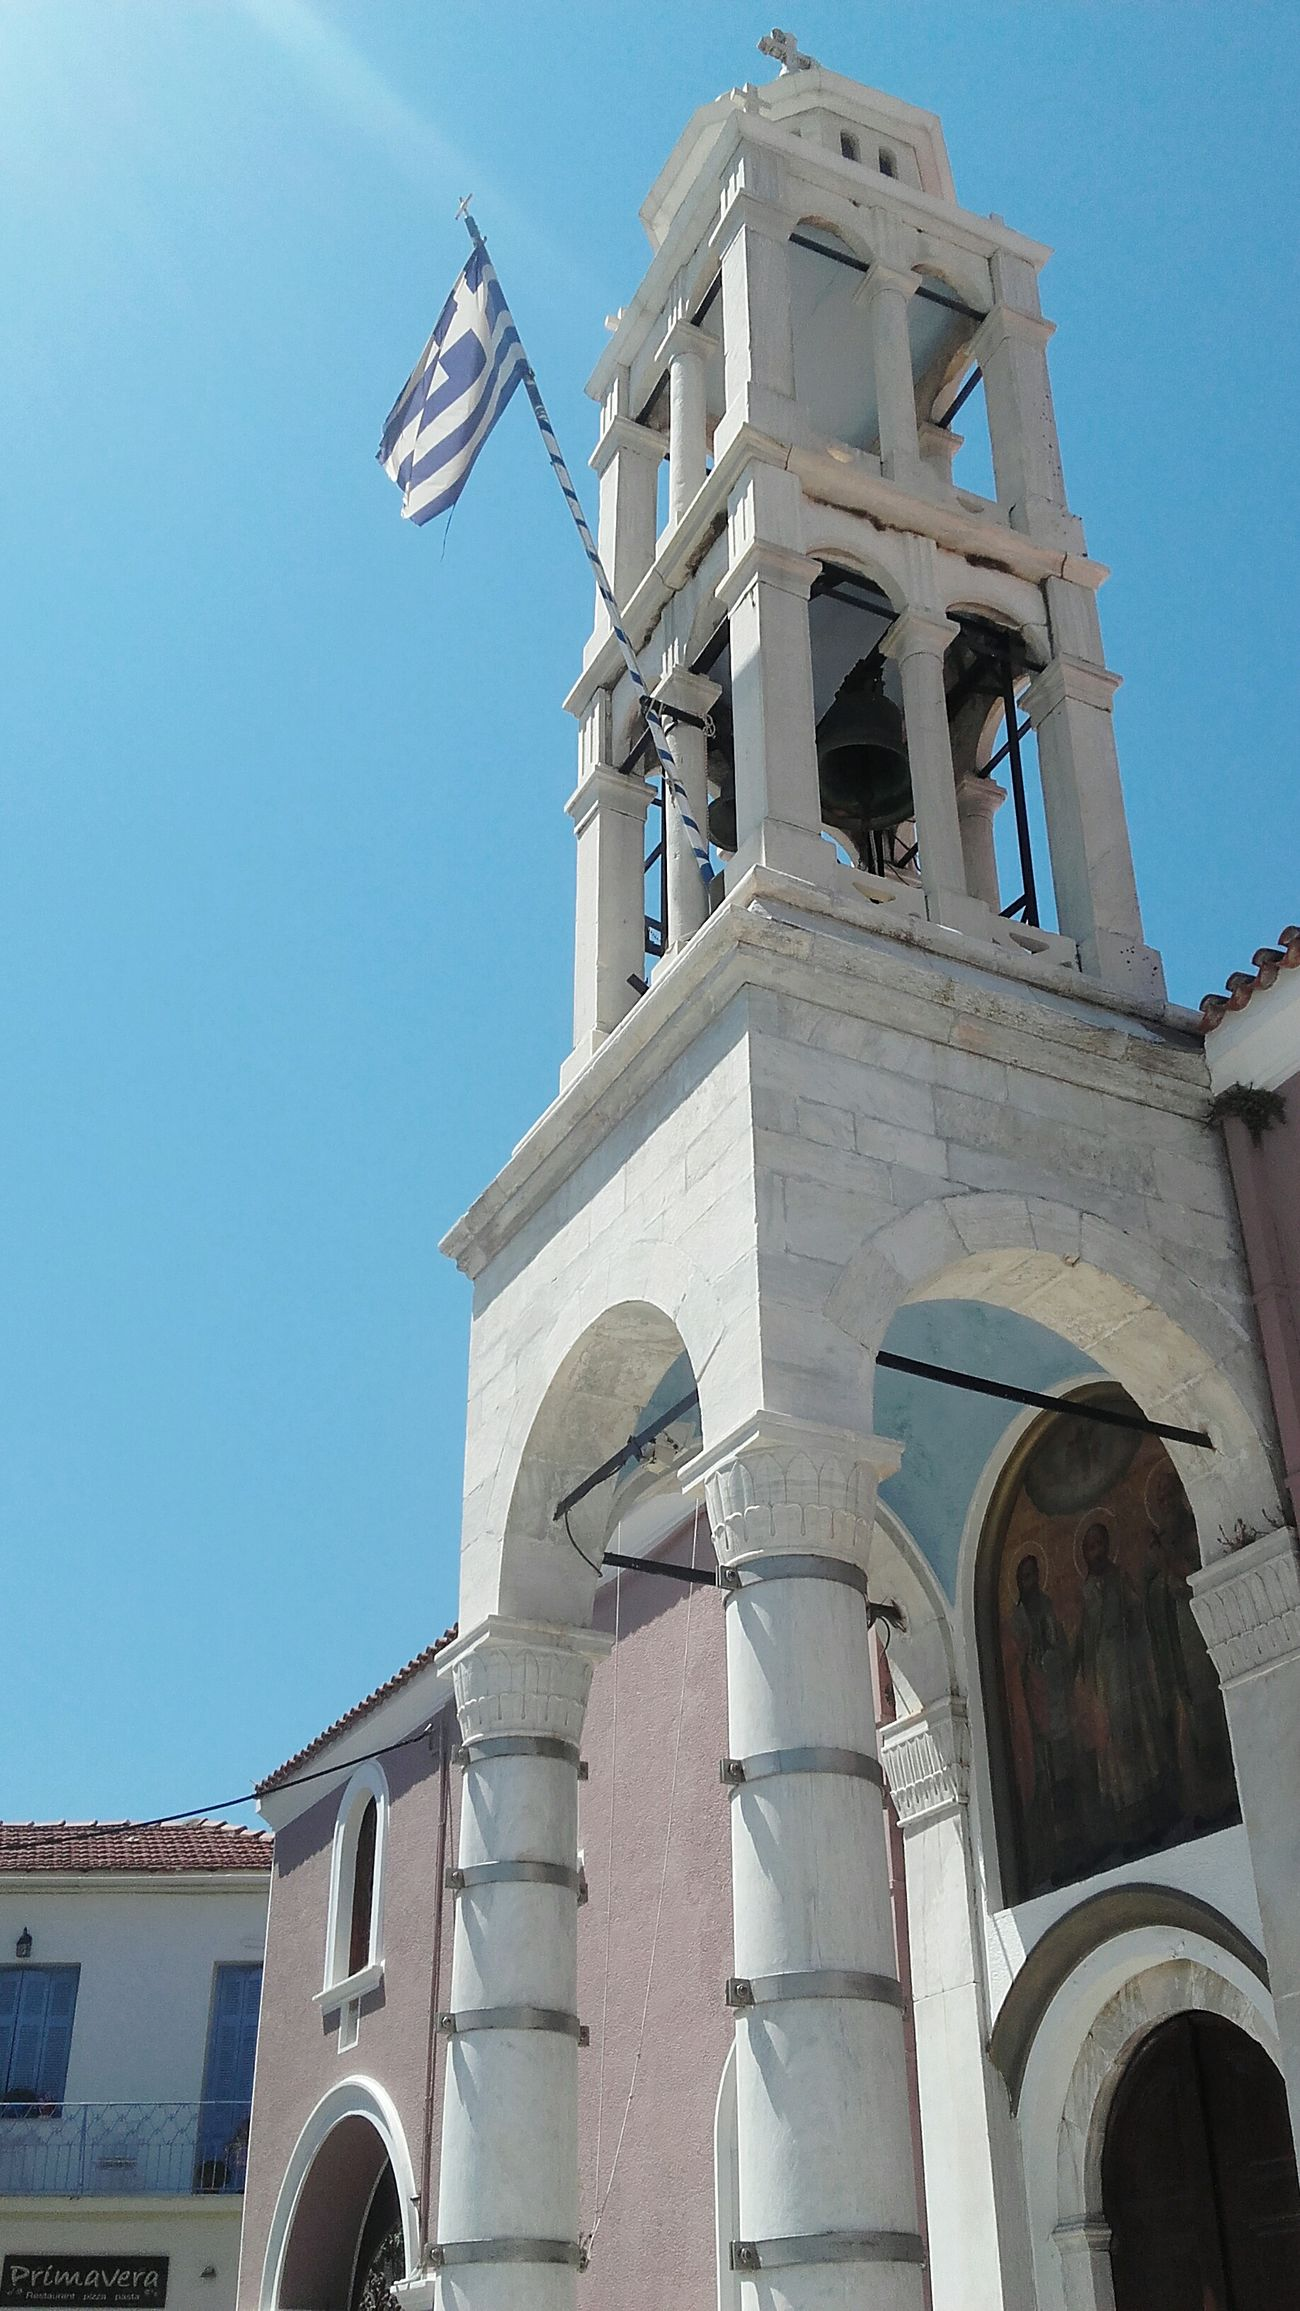 Blue Sky Beautiful Blue And White Beautiful Greece Orthodox Orthodox Church Church Crkva Pravoslavlje Greece Greek Flag Skiathosisland Skiathos_island Likeforlike Like4like Fresh Enjoying Life Blue Sky Skiathos Fresh AF Relaxing